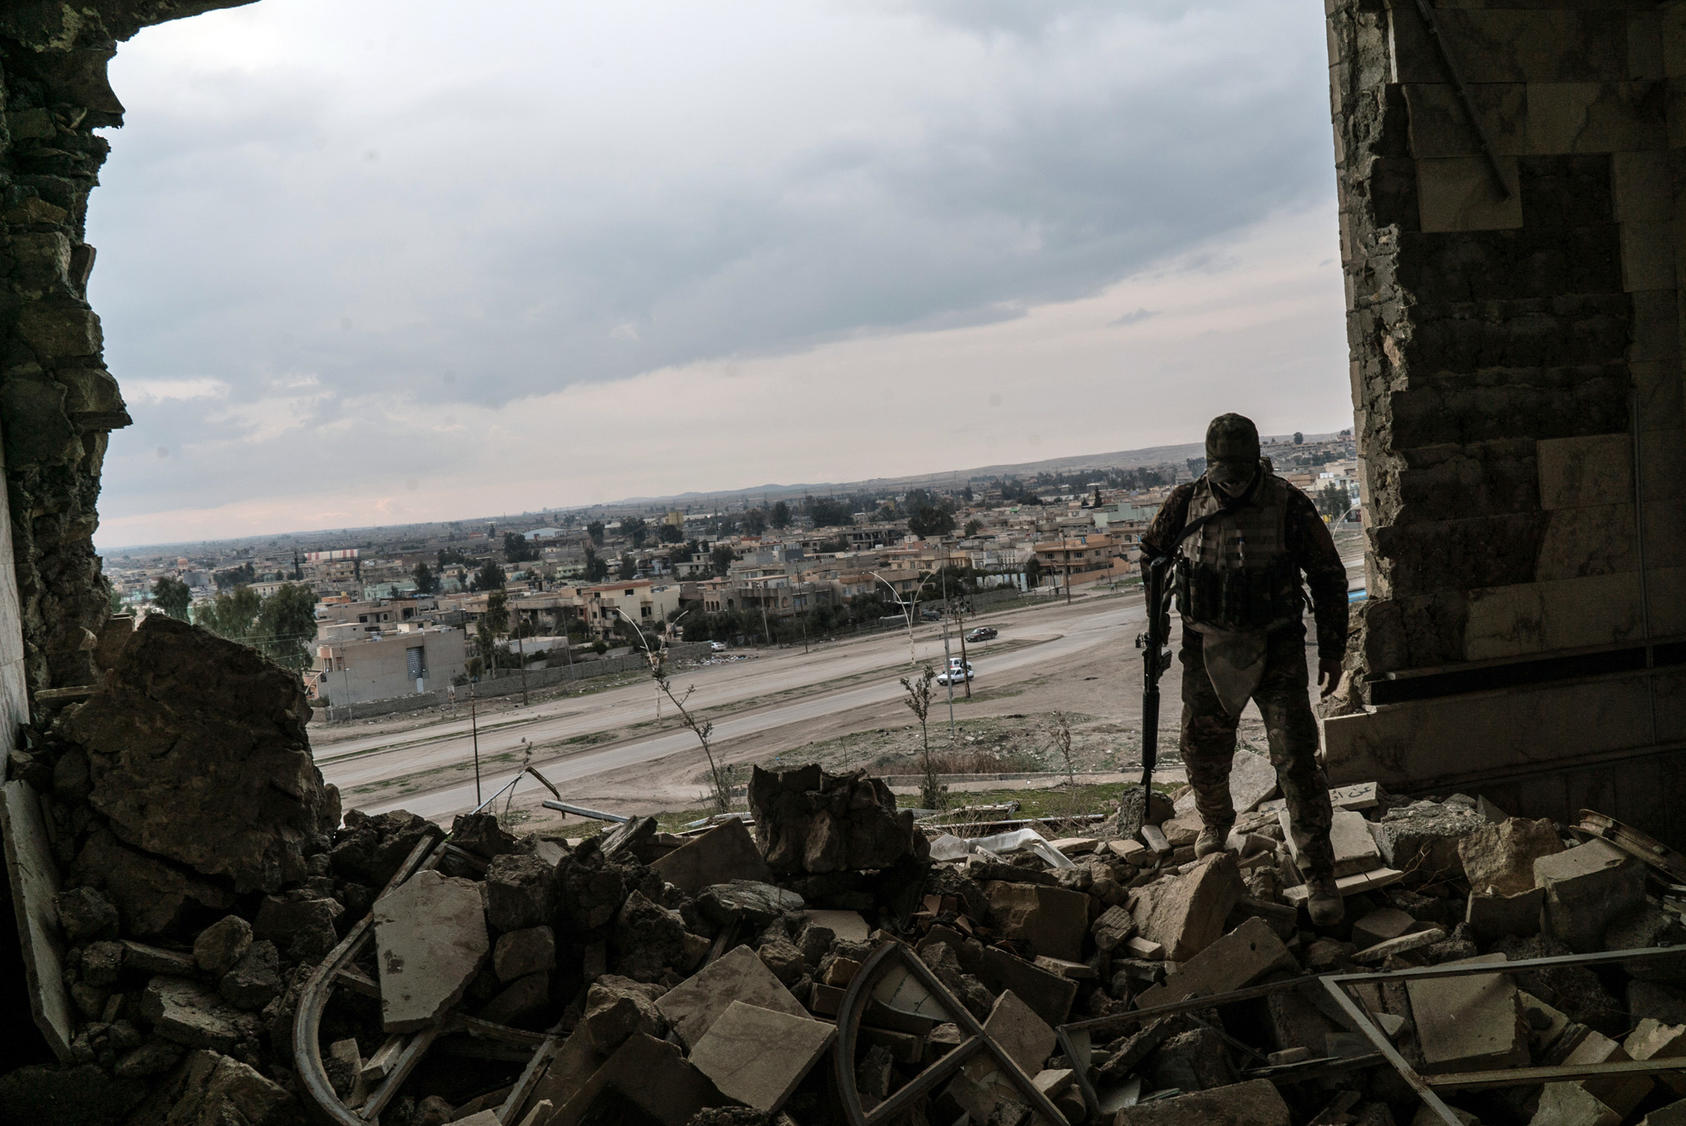 An Iraq soldier in a damaged building in Mosul in February, 2017. The overall push to free Mosul, once Iraq's second-largest city, began in October, with local troops pushing from the east into the city's geographically larger but more sparsely populated eastern half. In late January, they reached the banks of the Tigris River, which bisects Mosul, and declared the city's eastern section liberated. (Ben C. Solomon/The New York Times)